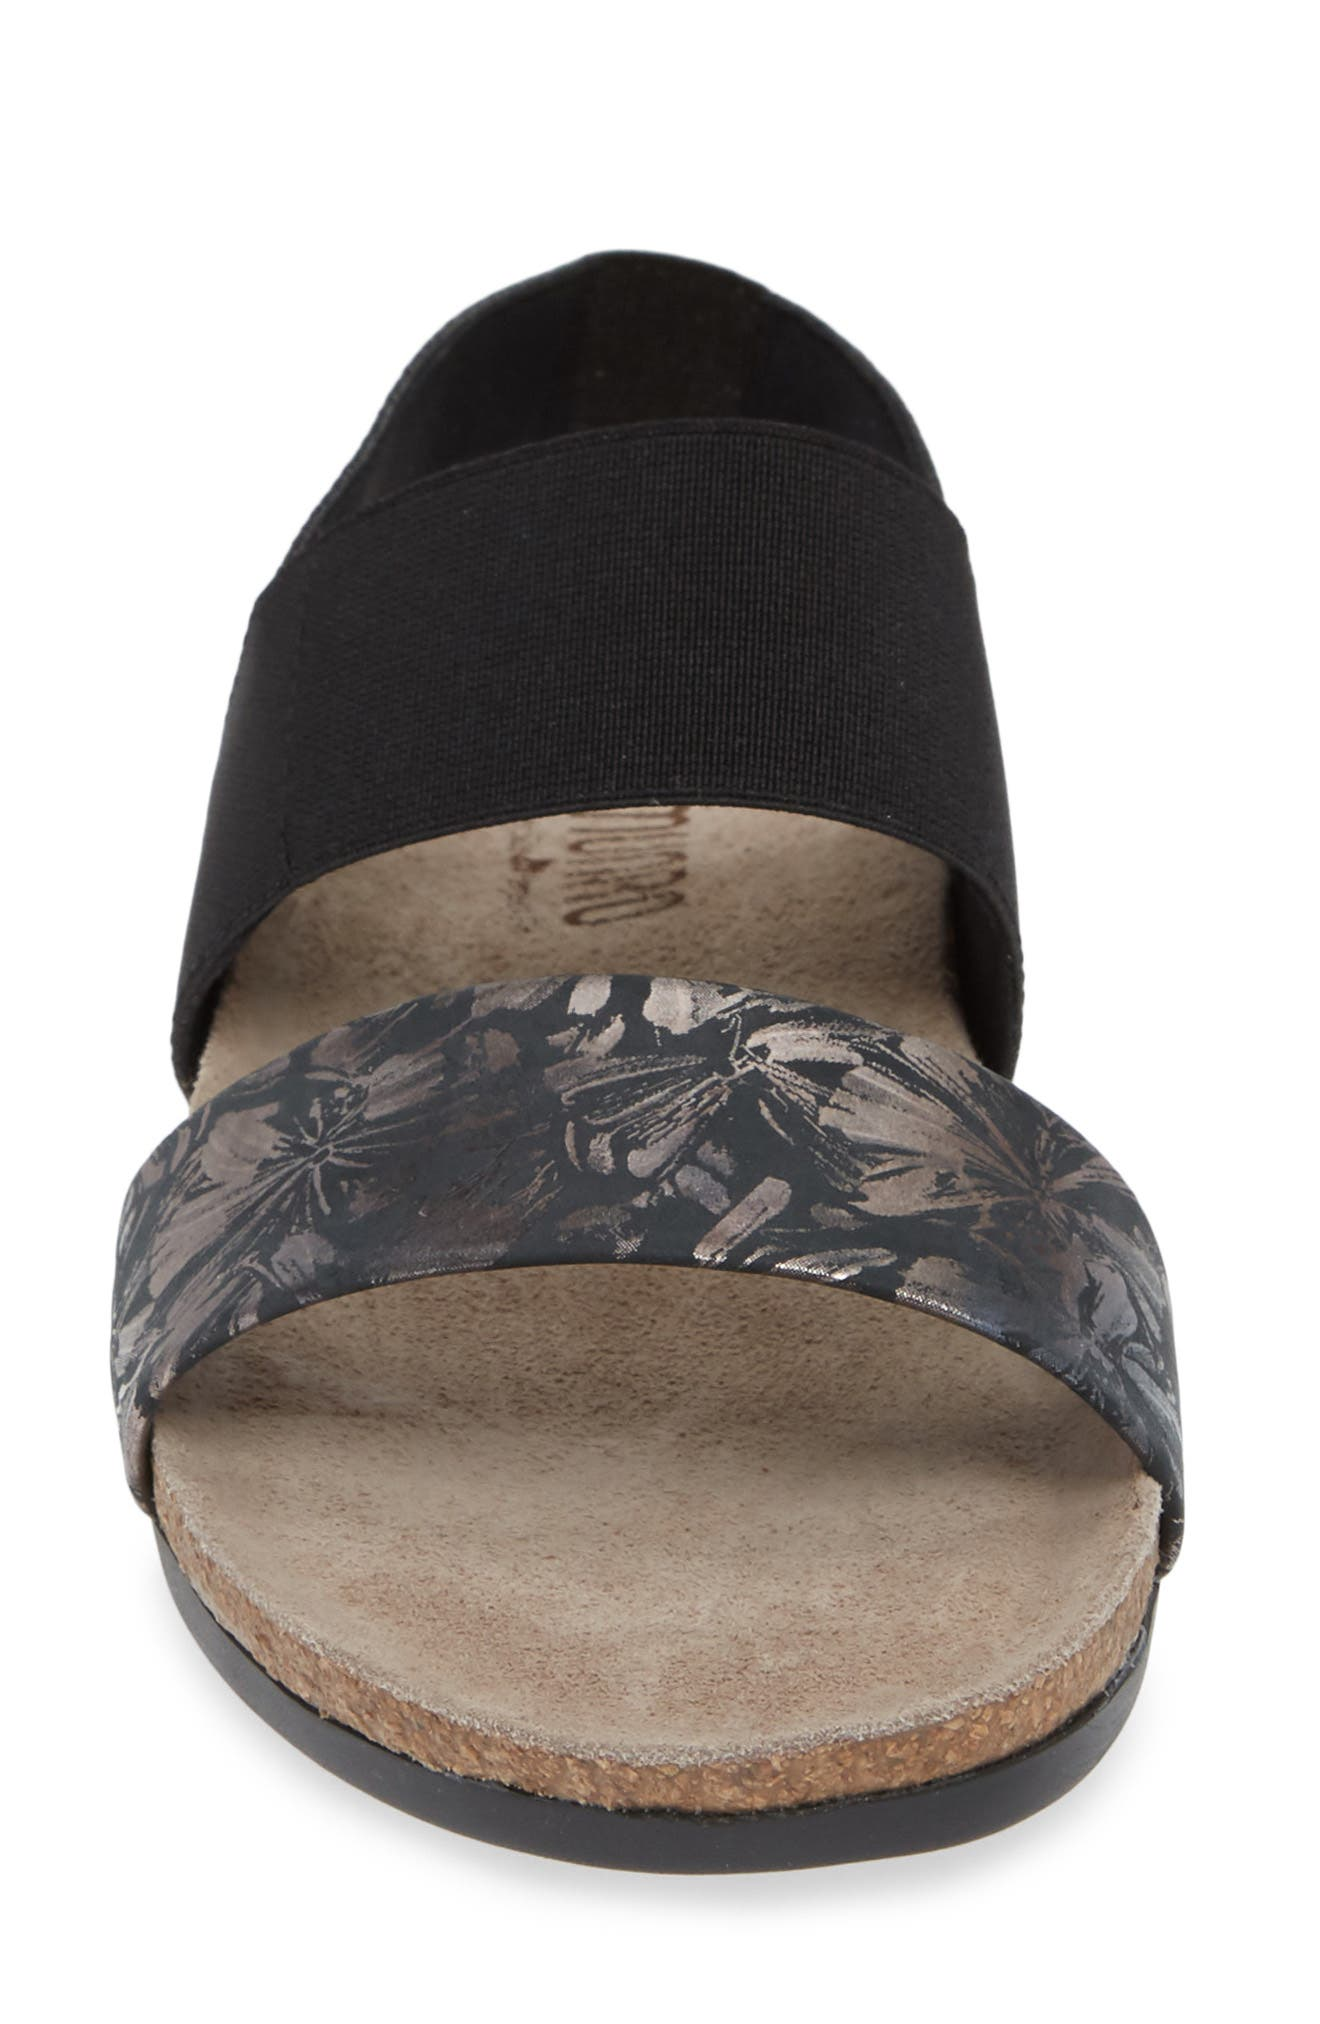 MUNRO, 'Pisces' Sandal, Alternate thumbnail 4, color, DARK FLORAL PRINT LEATHER